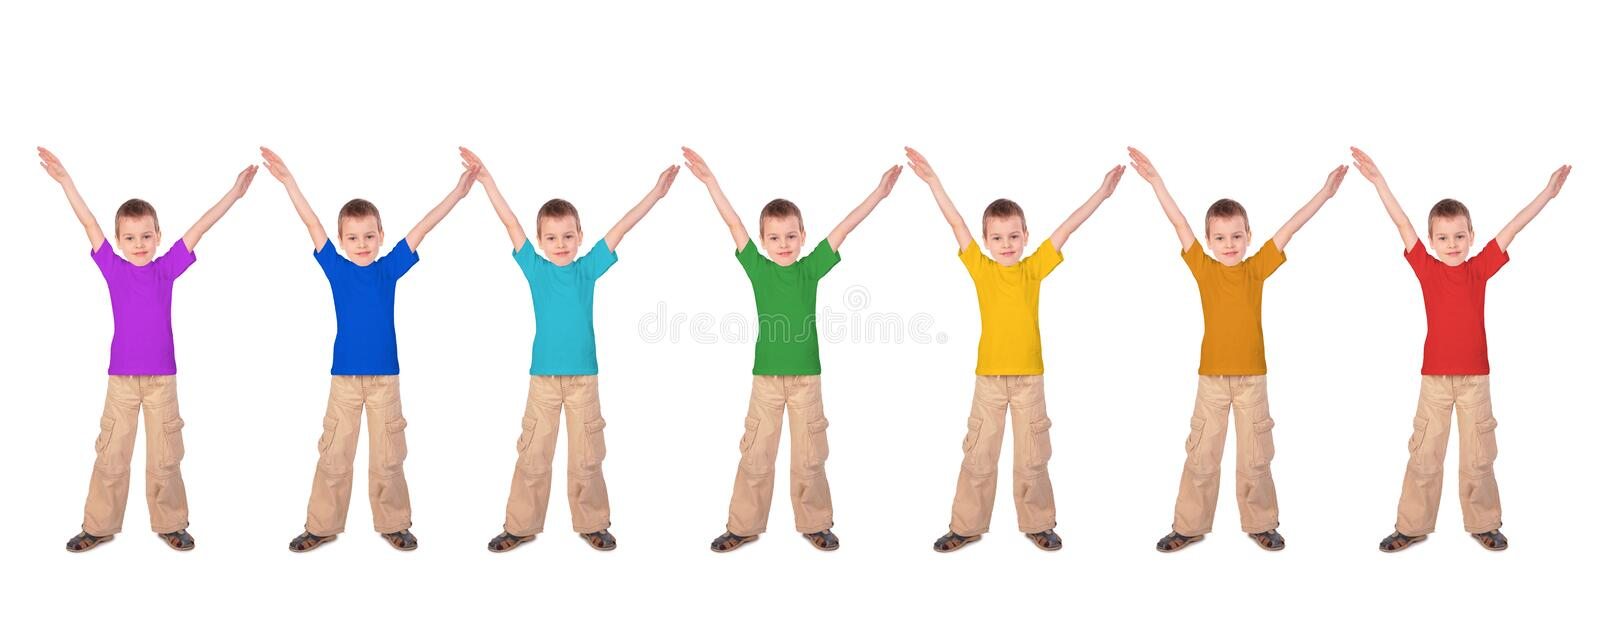 Download Boys With Rainbow Color Sports Shirts Stock Image - Image: 12540195